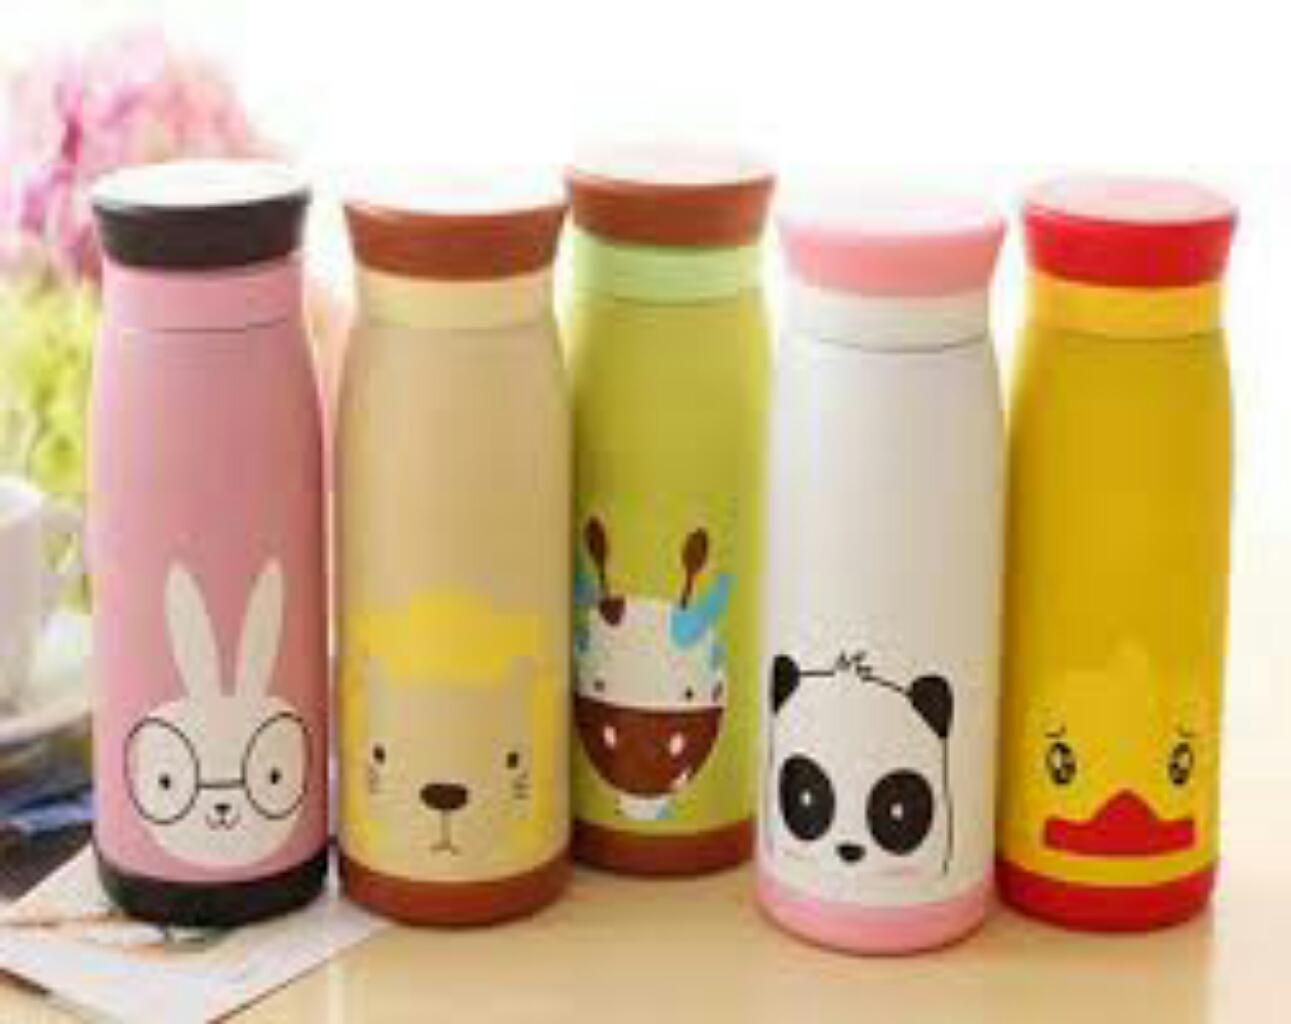 Termos karakter animal 500 ml